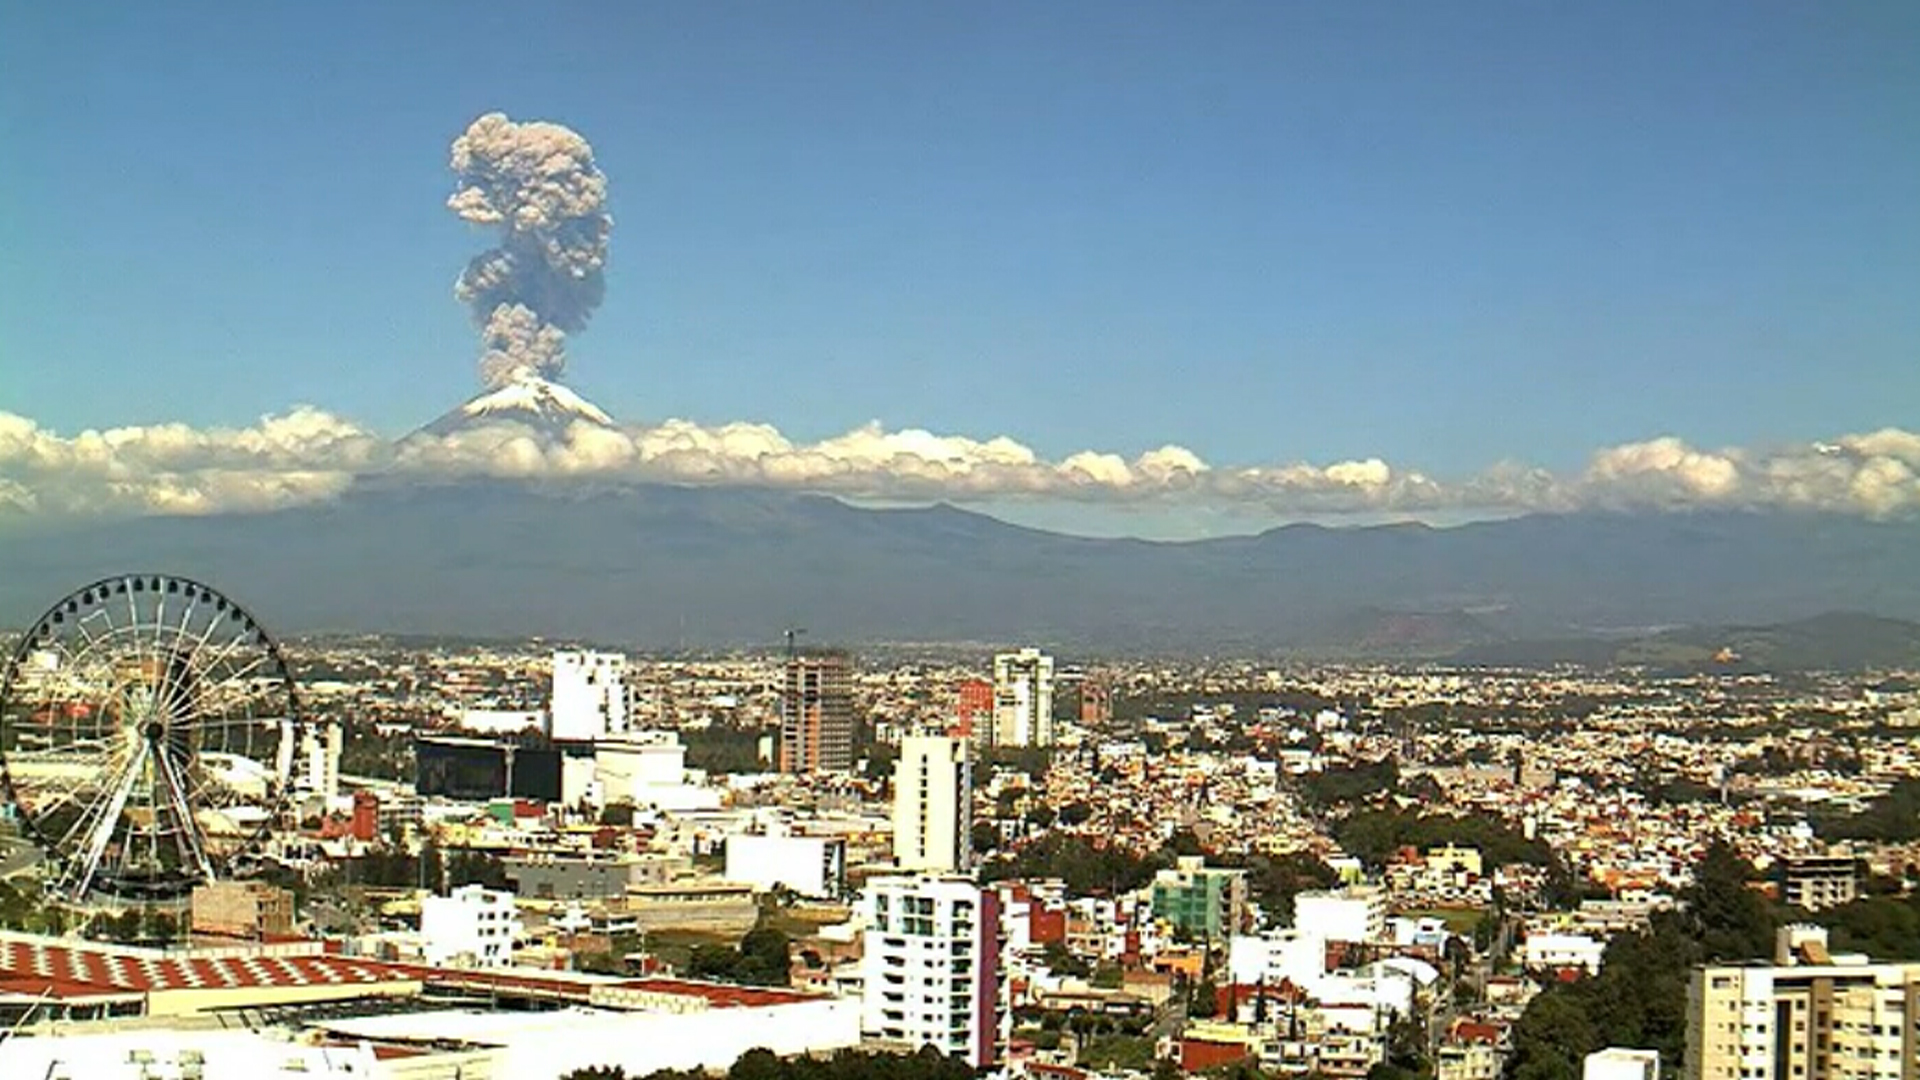 Amazing footage of volcano eruption in Mexico